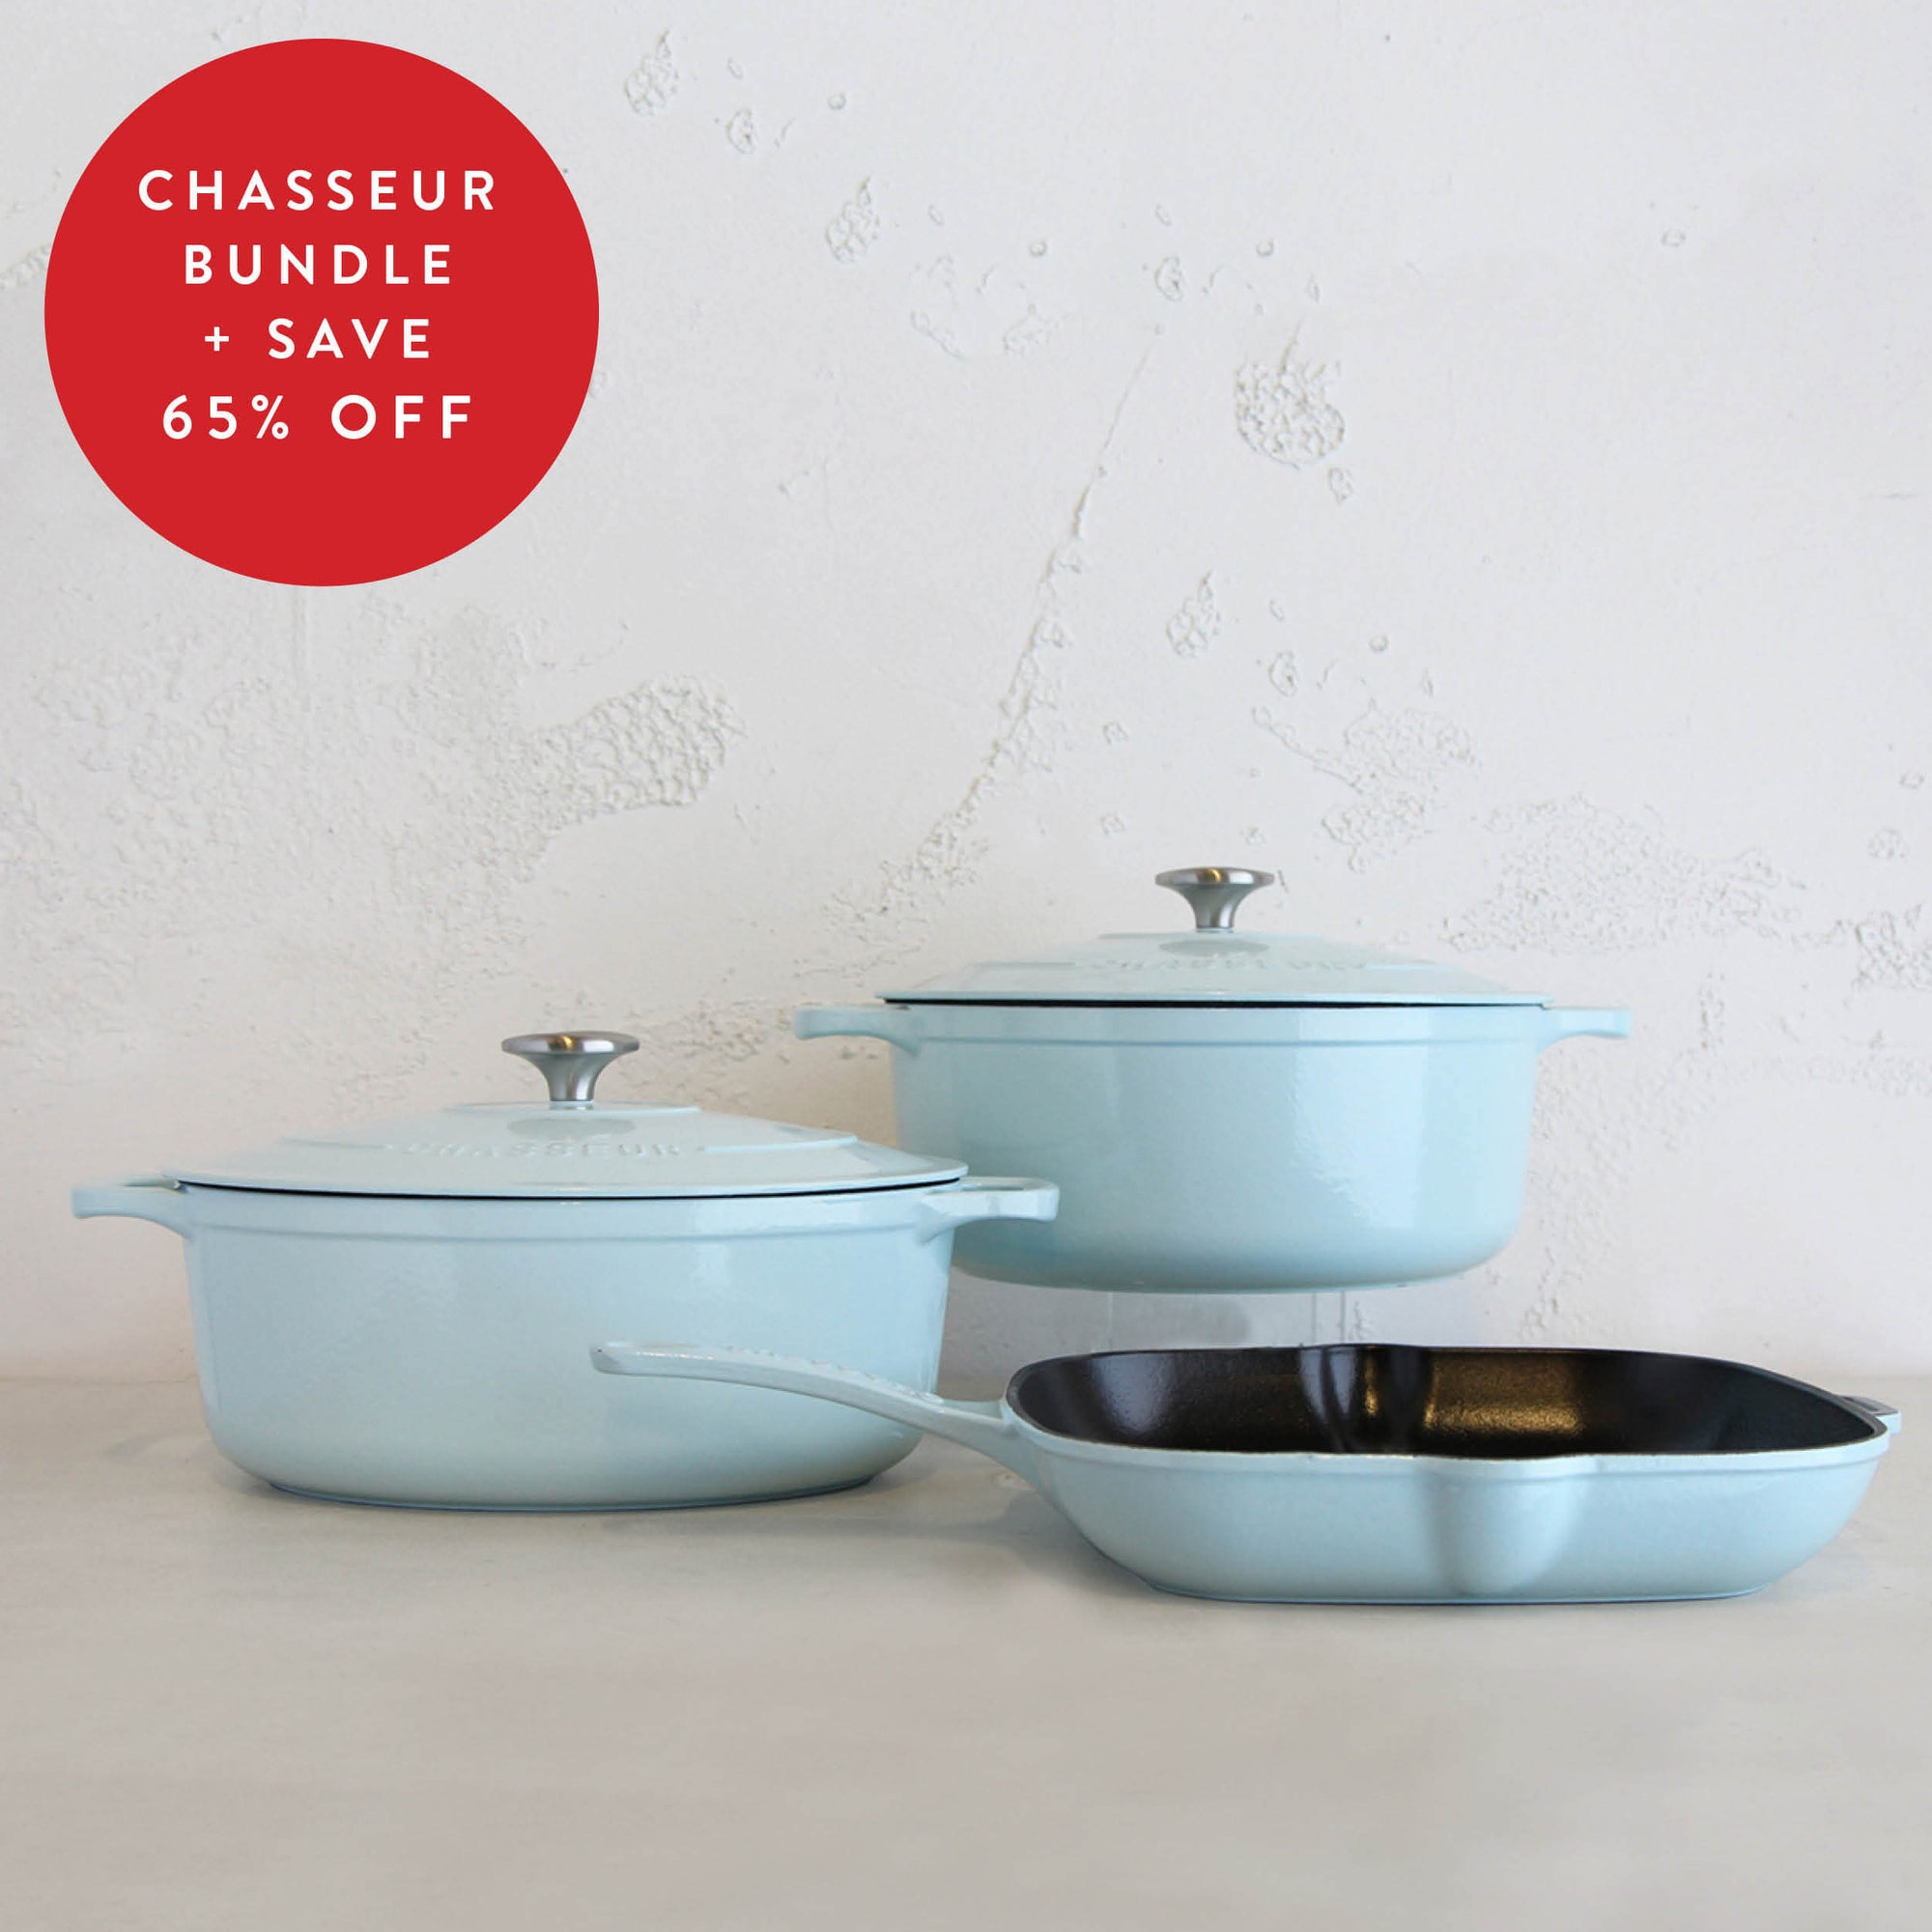 CHASSEUR FRENCH CAST IRON COOKWARE TRIO   |  DUCK EGG BLUE